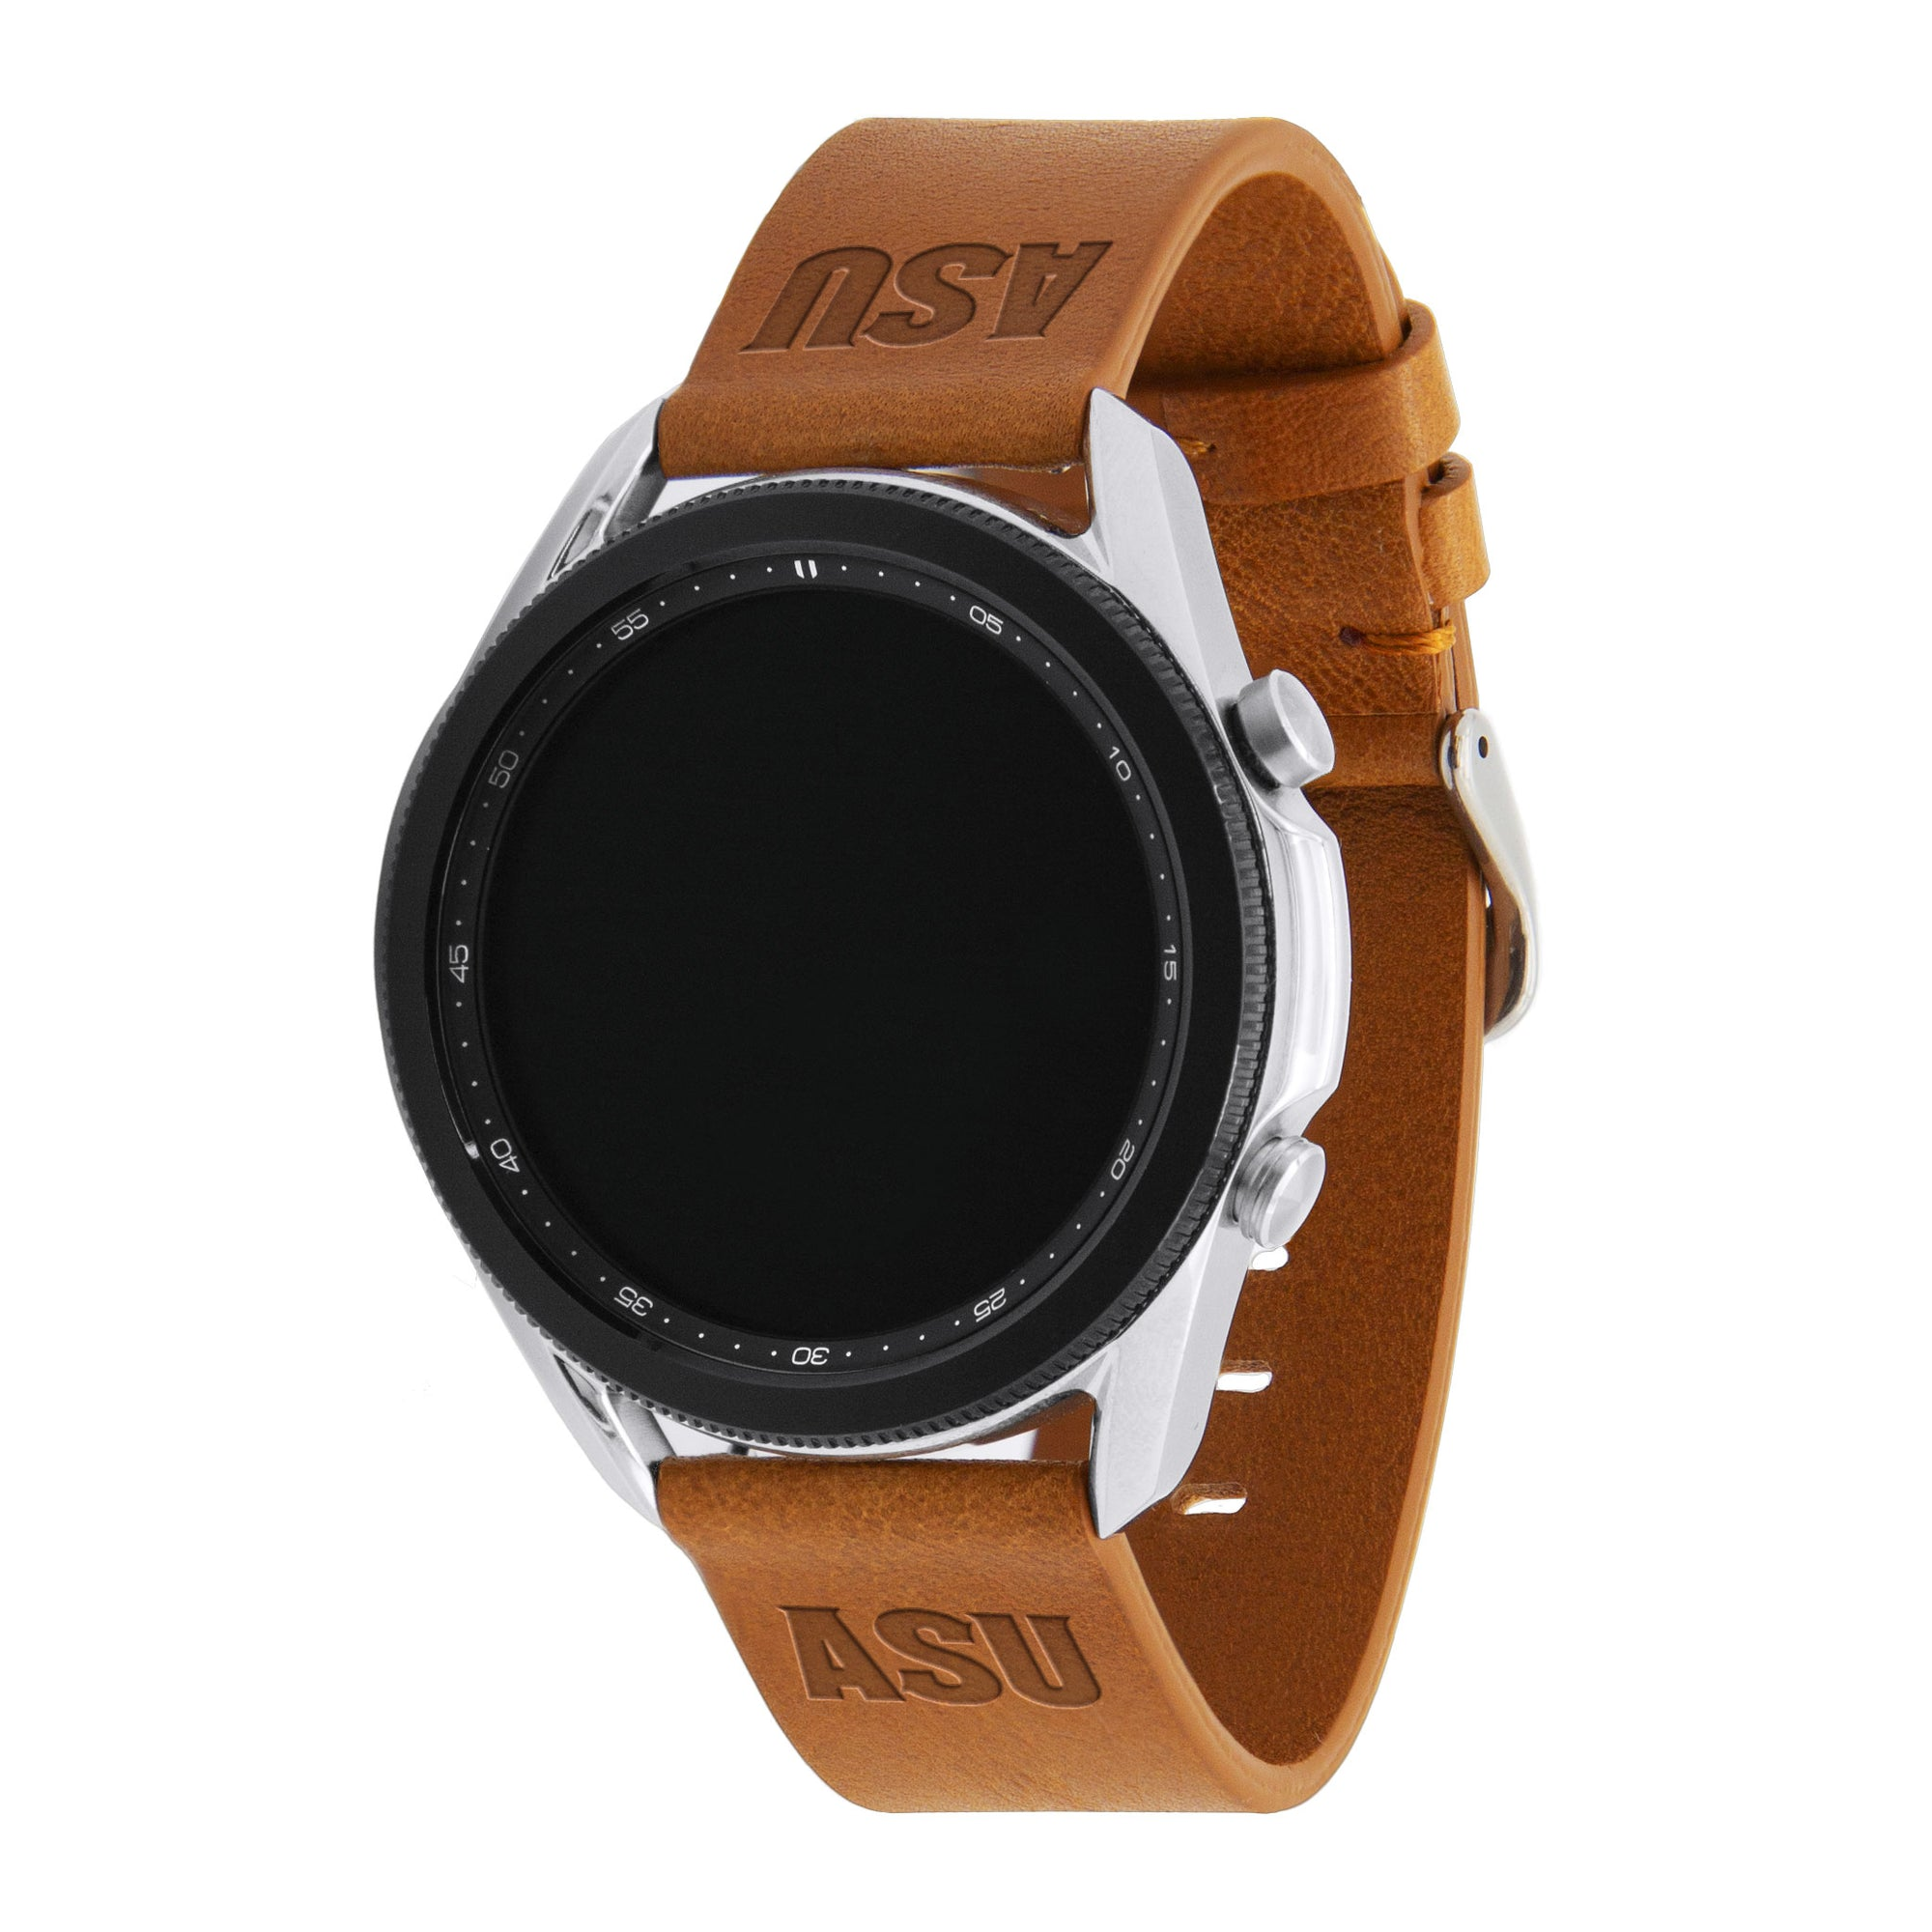 Arizona State Sun Devils Quick Change Leather Watch Band - AffinityBands